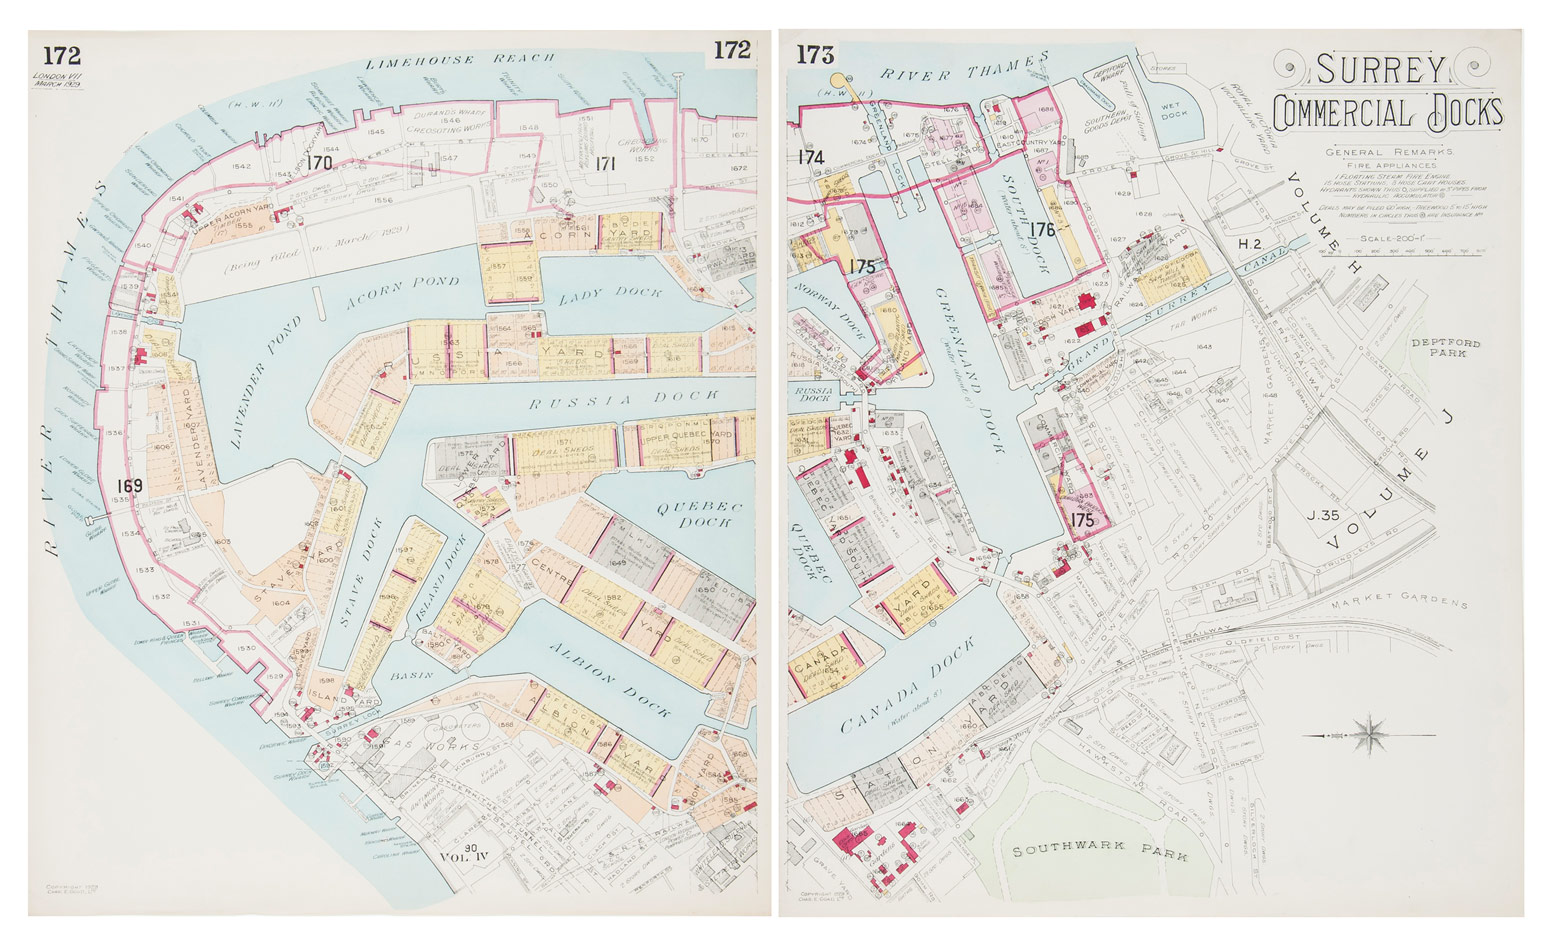 Old Street Maps - Surrey Docks